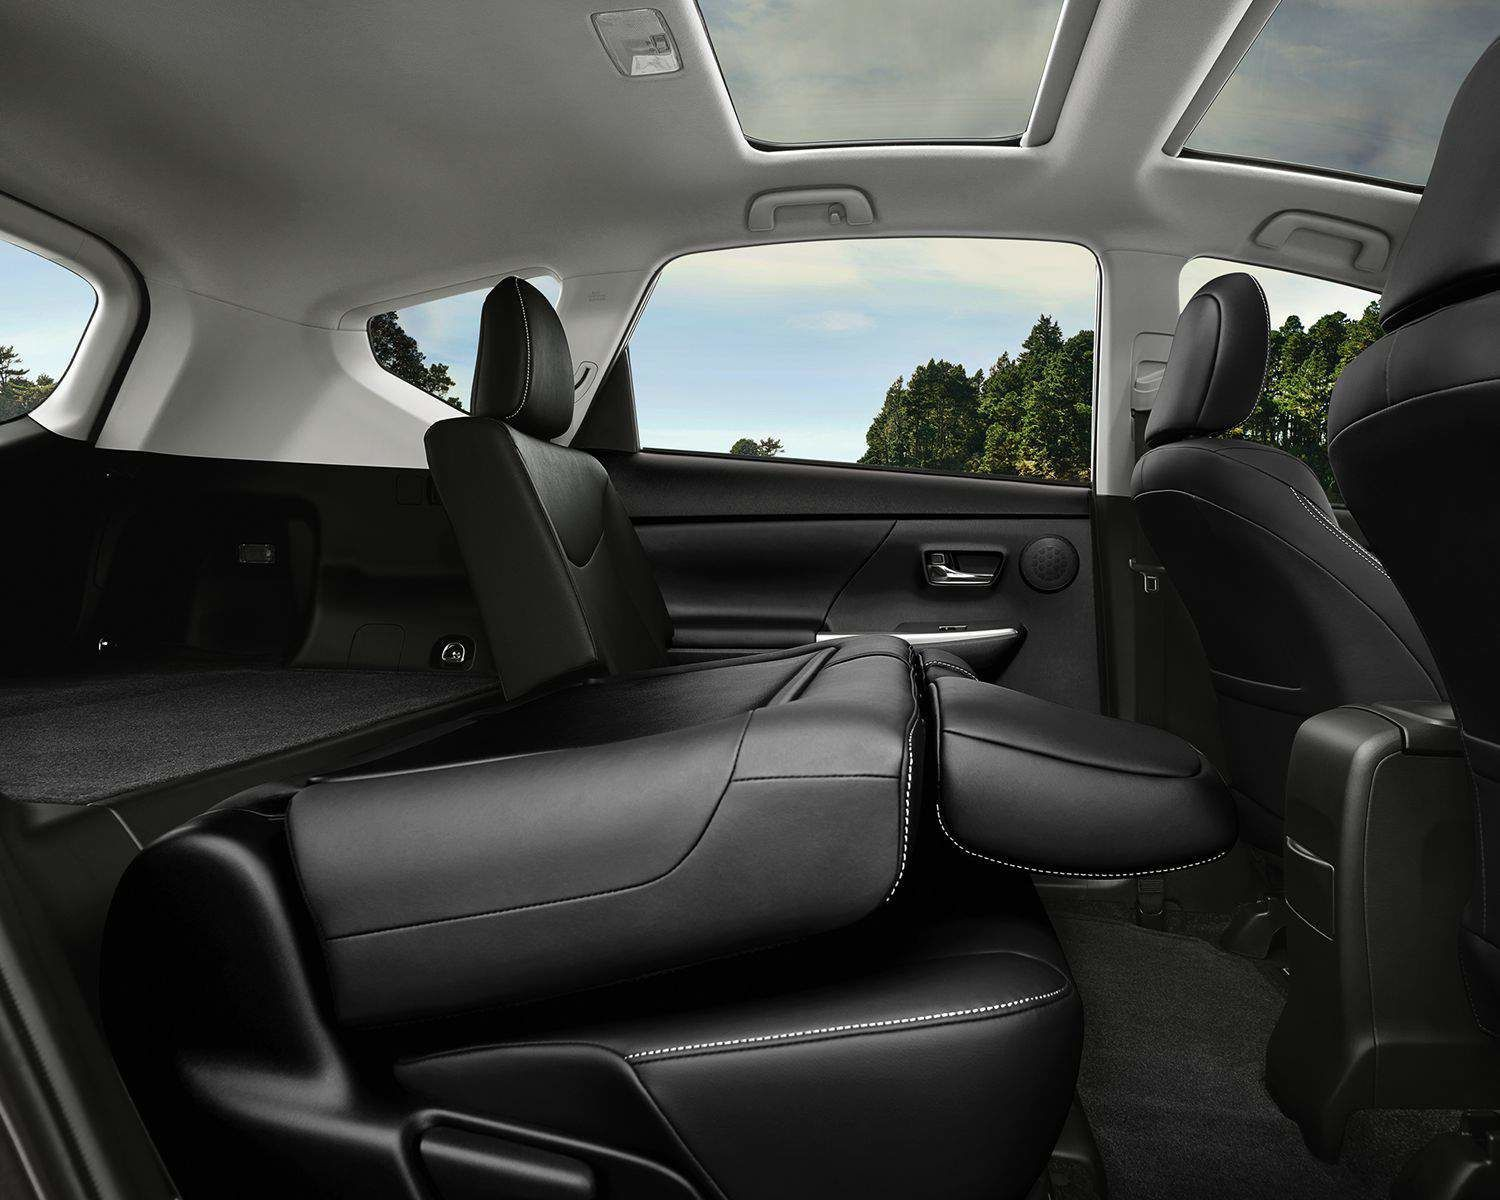 60/40 Split Rear Seats